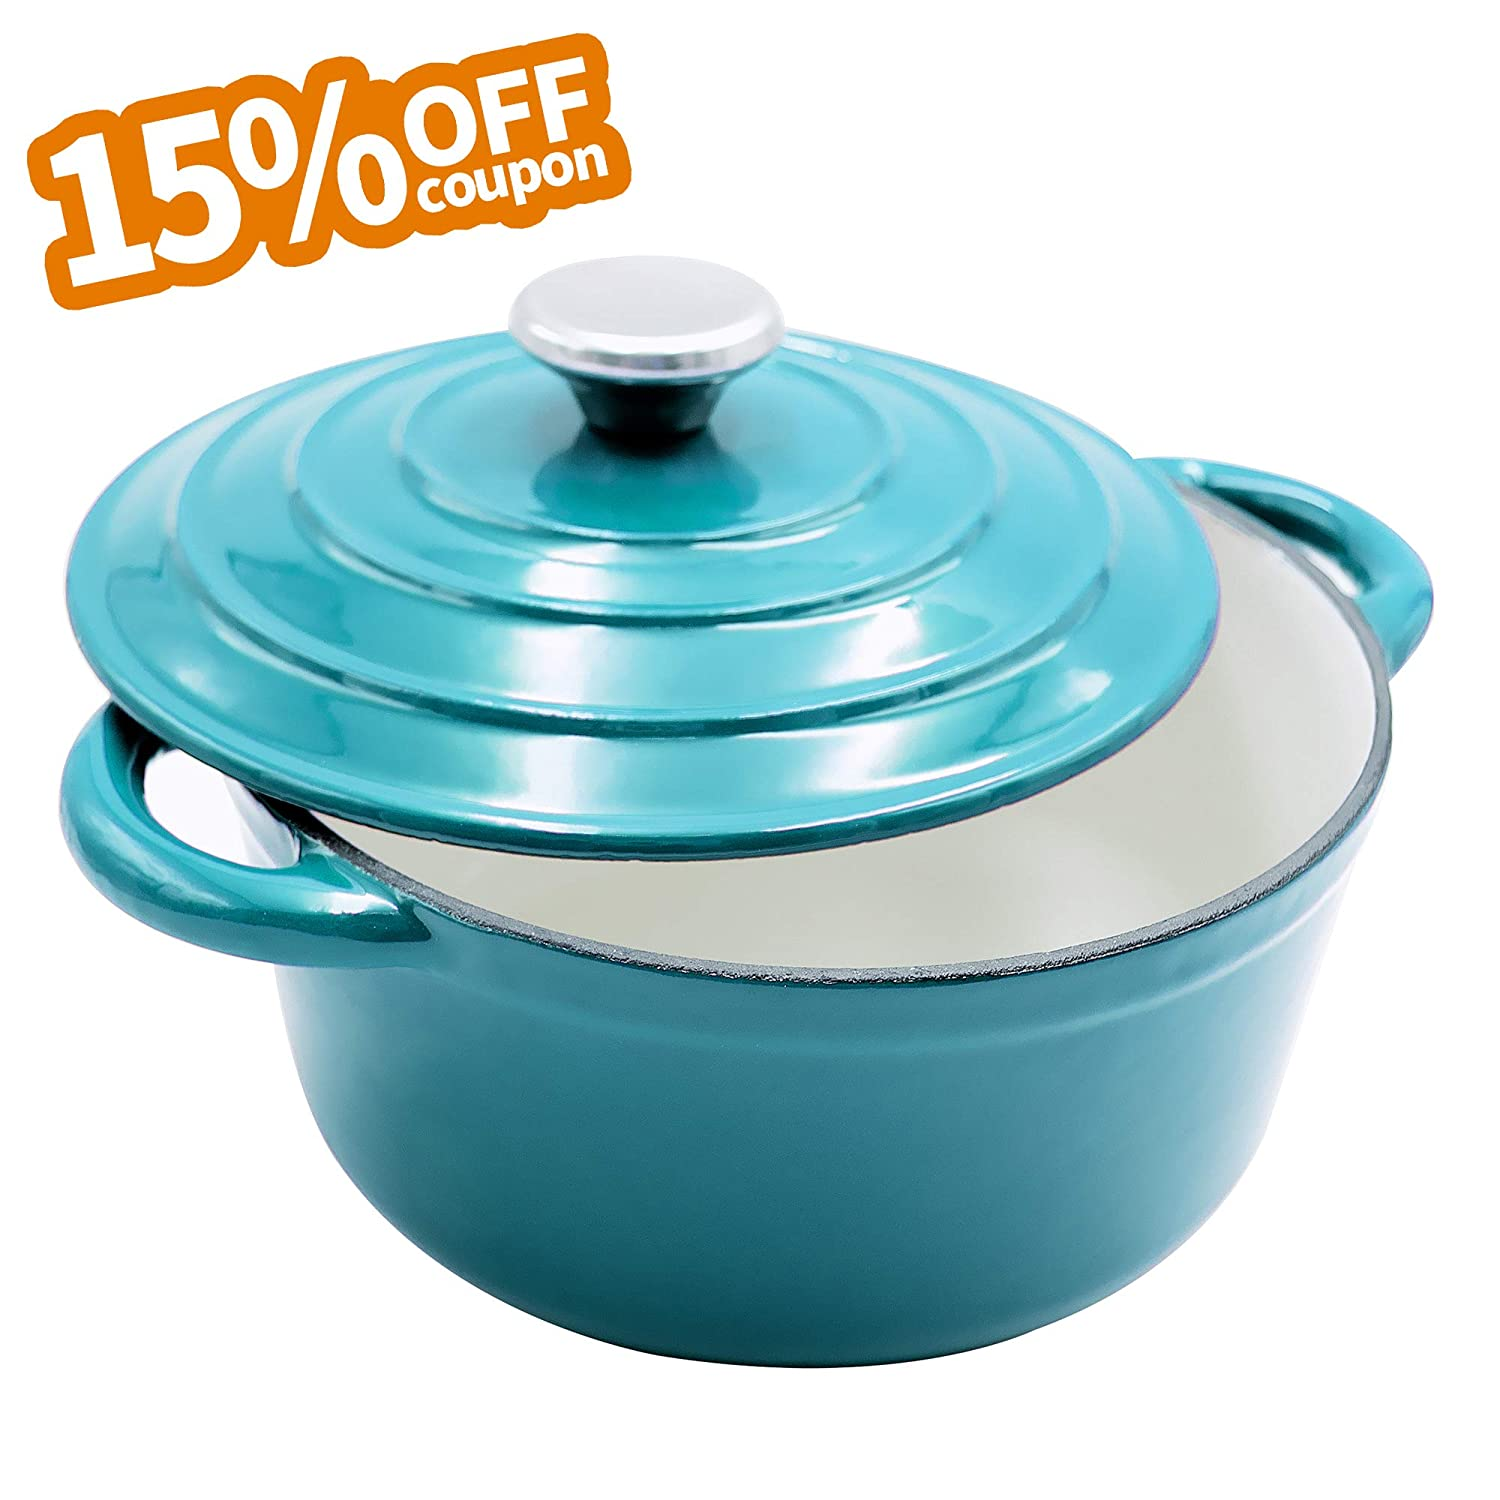 AIDEA Enameled Cast Iron Dutch Oven - 5-Quart Turquoise Blue Round Ceramic Coated Cookware French Oven with Self Basting Lid